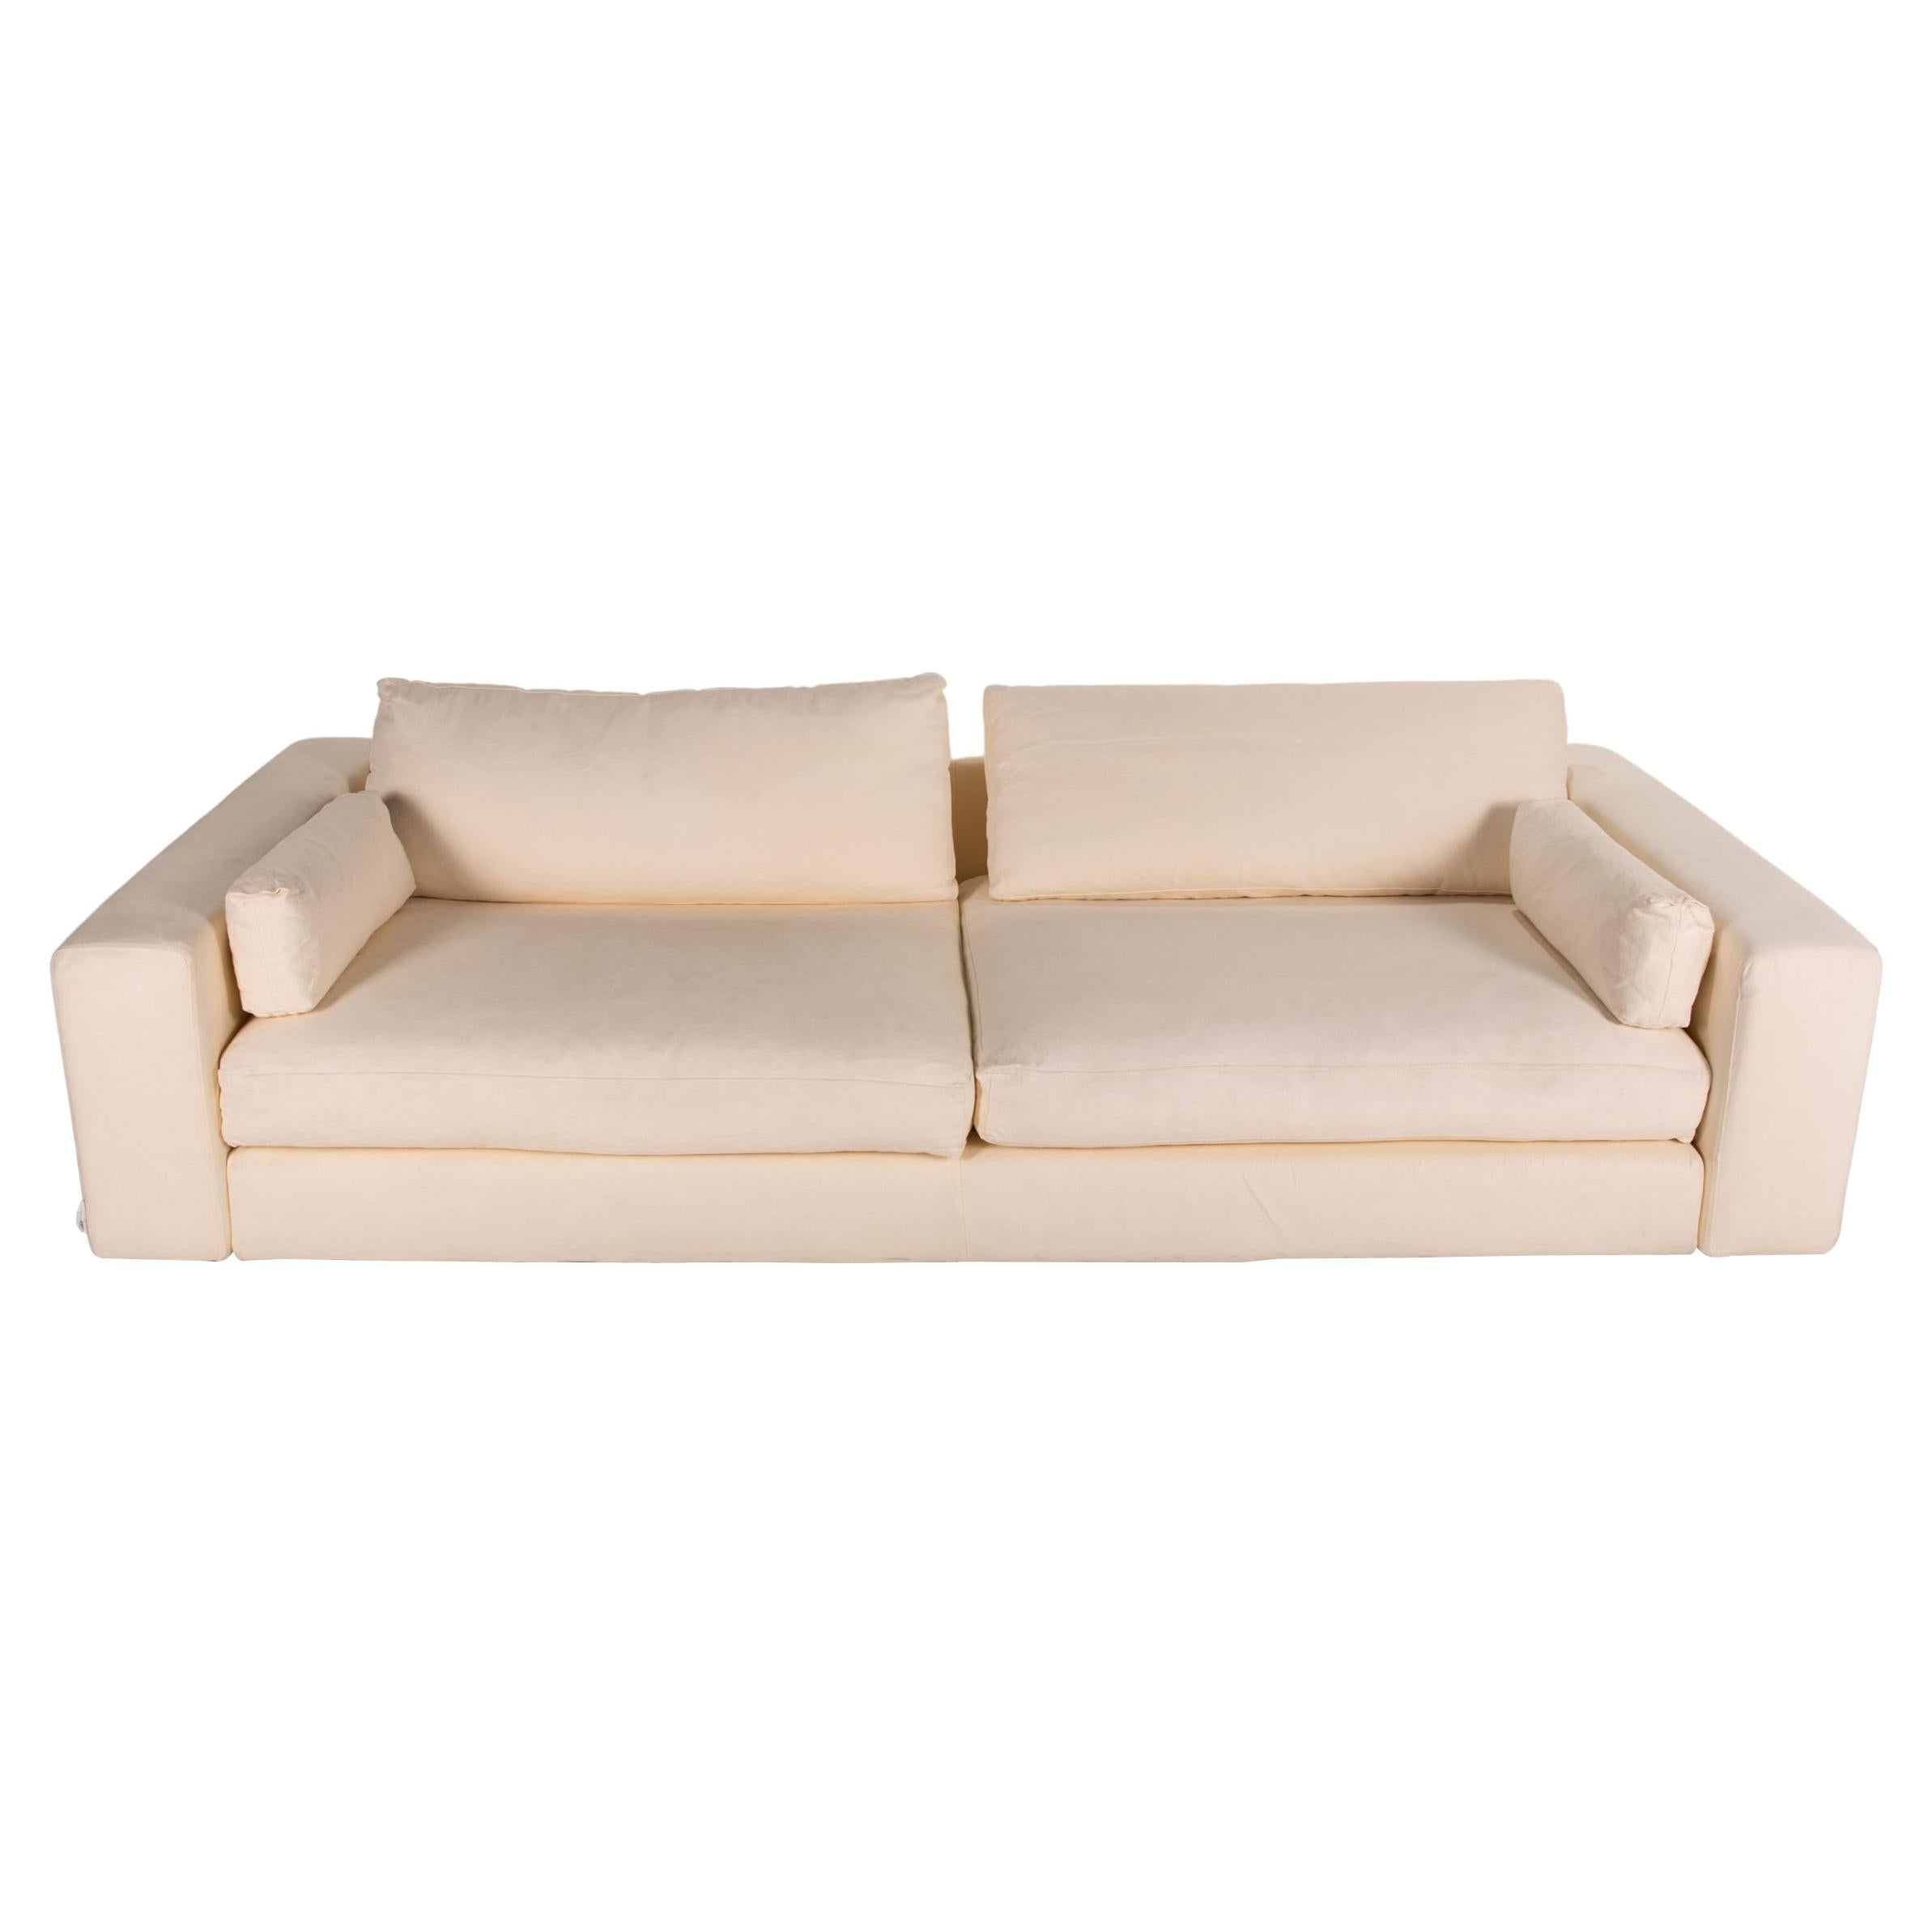 Who's Perfect Summer Fabric Sofa Cream Four Seater Couch